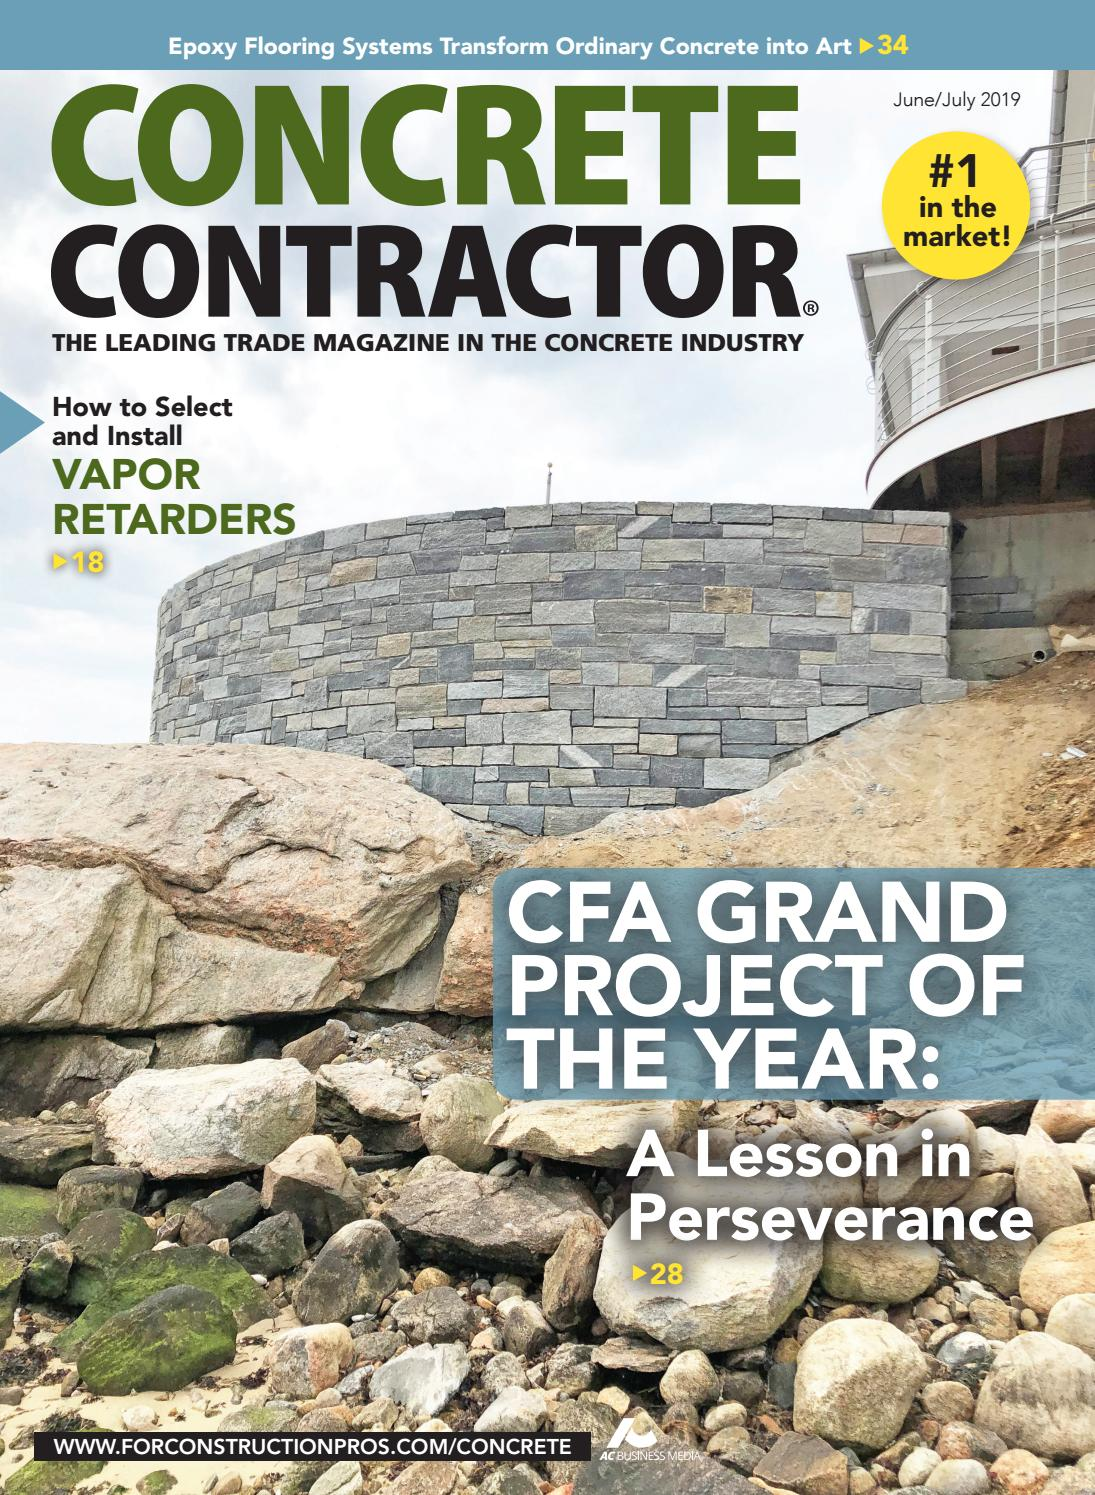 Concrete Contractor June/July 2019 by ForConstructionPros